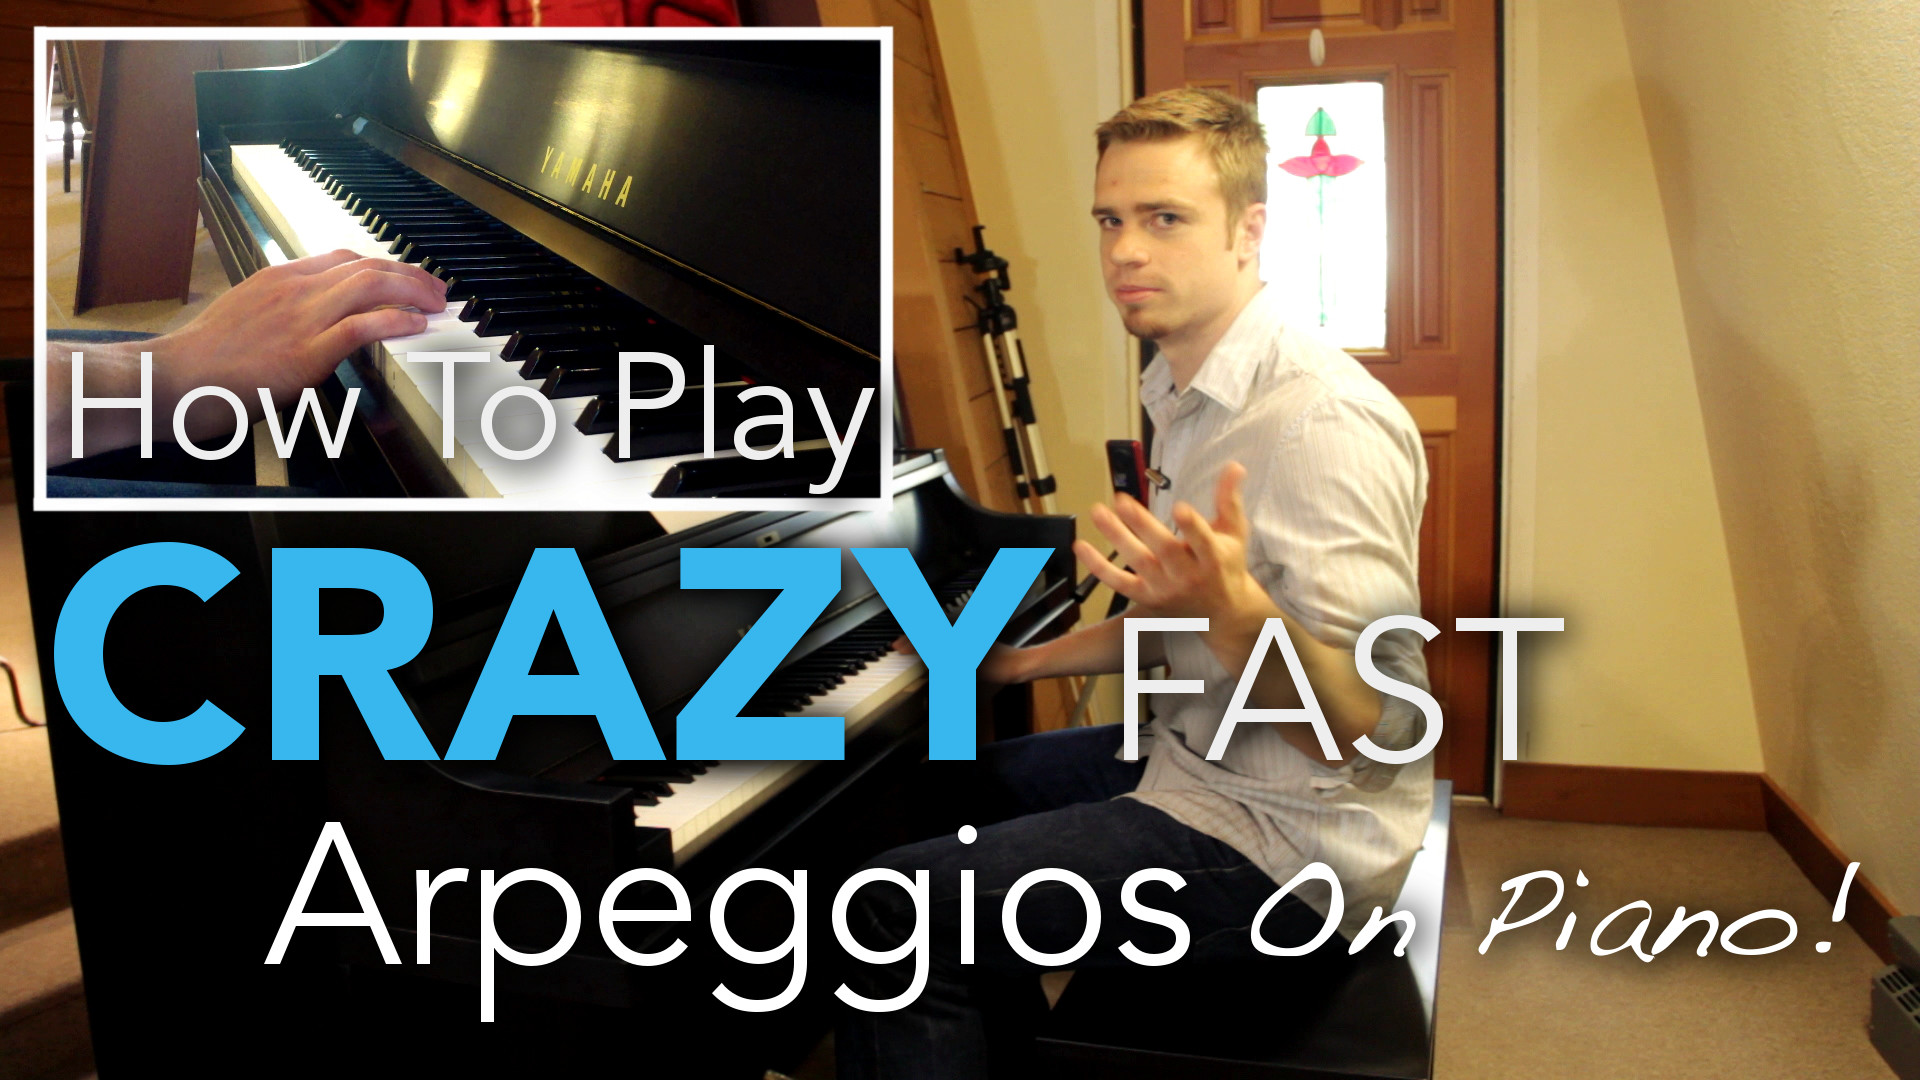 How to play crazy fast piano arpeggios thumbnail